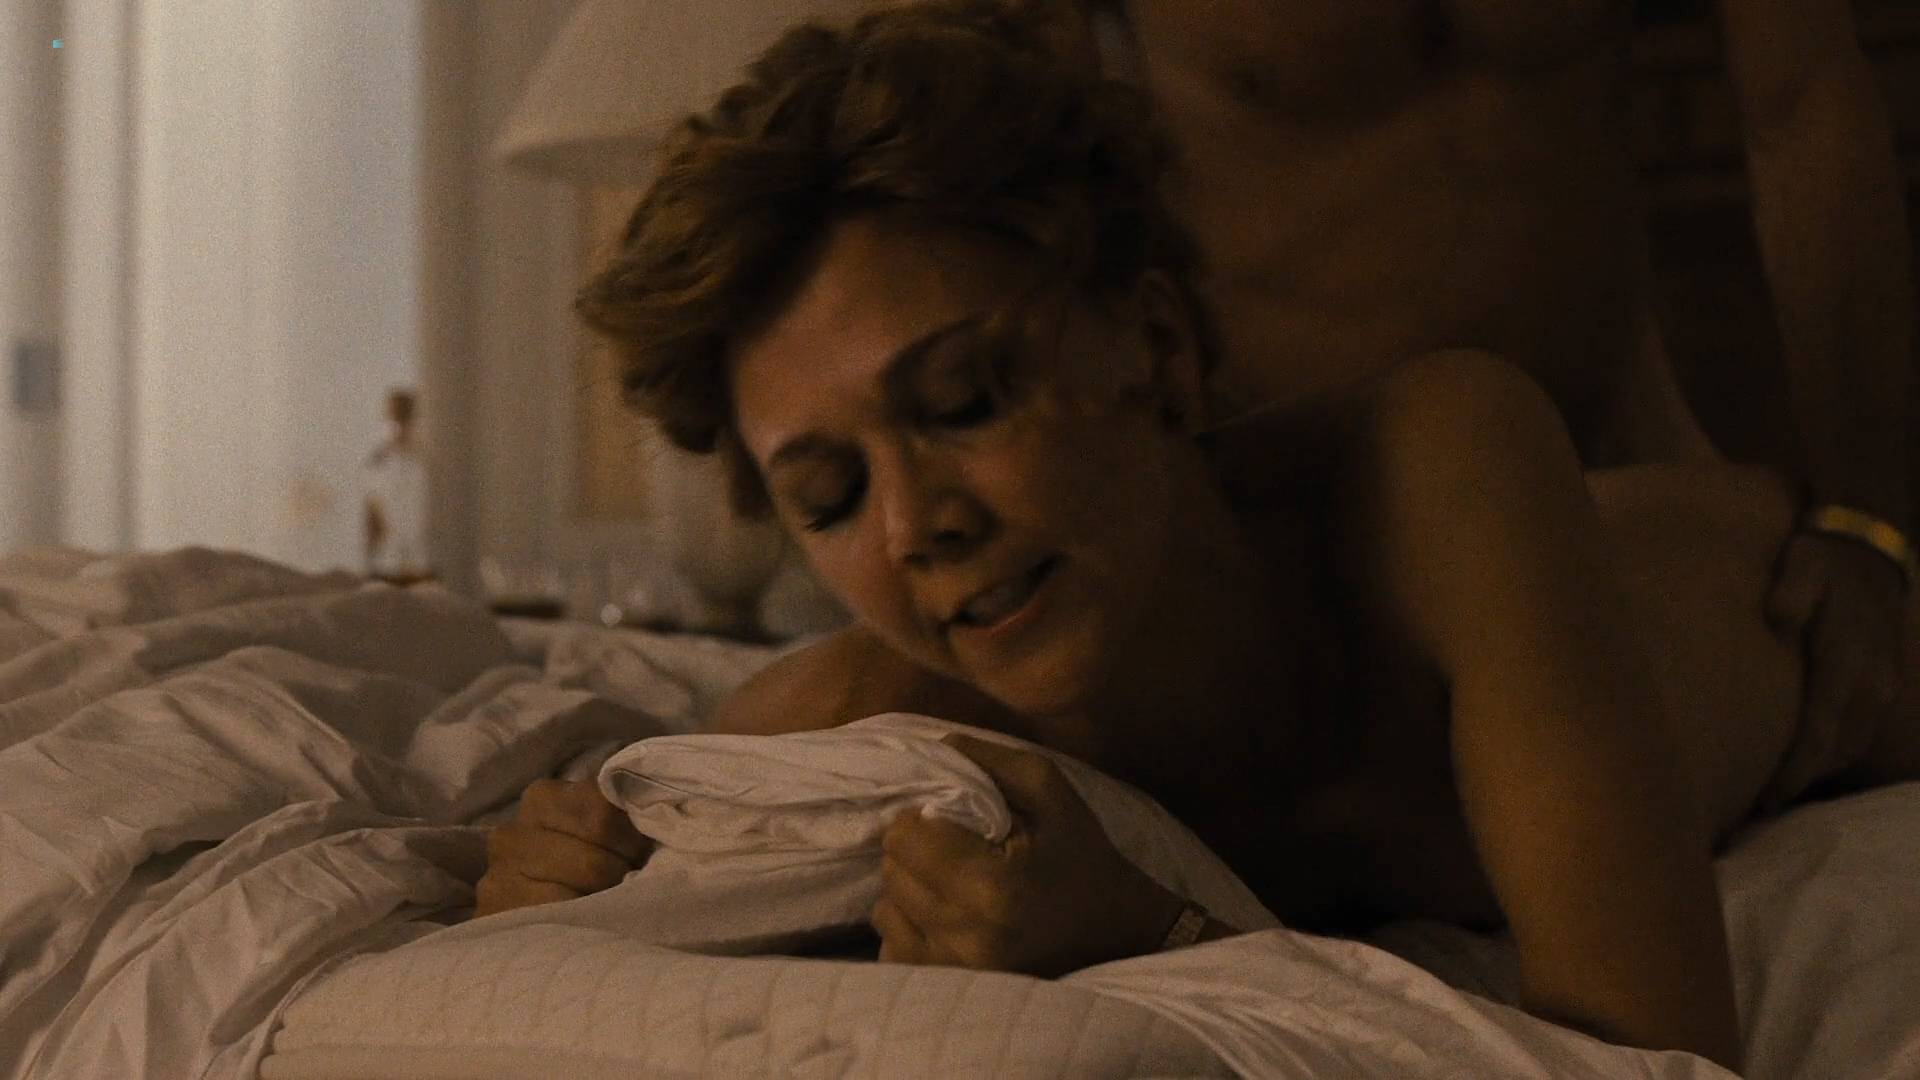 image Maggie gyllenhaal sex scene in the deuce scandalplanetcom